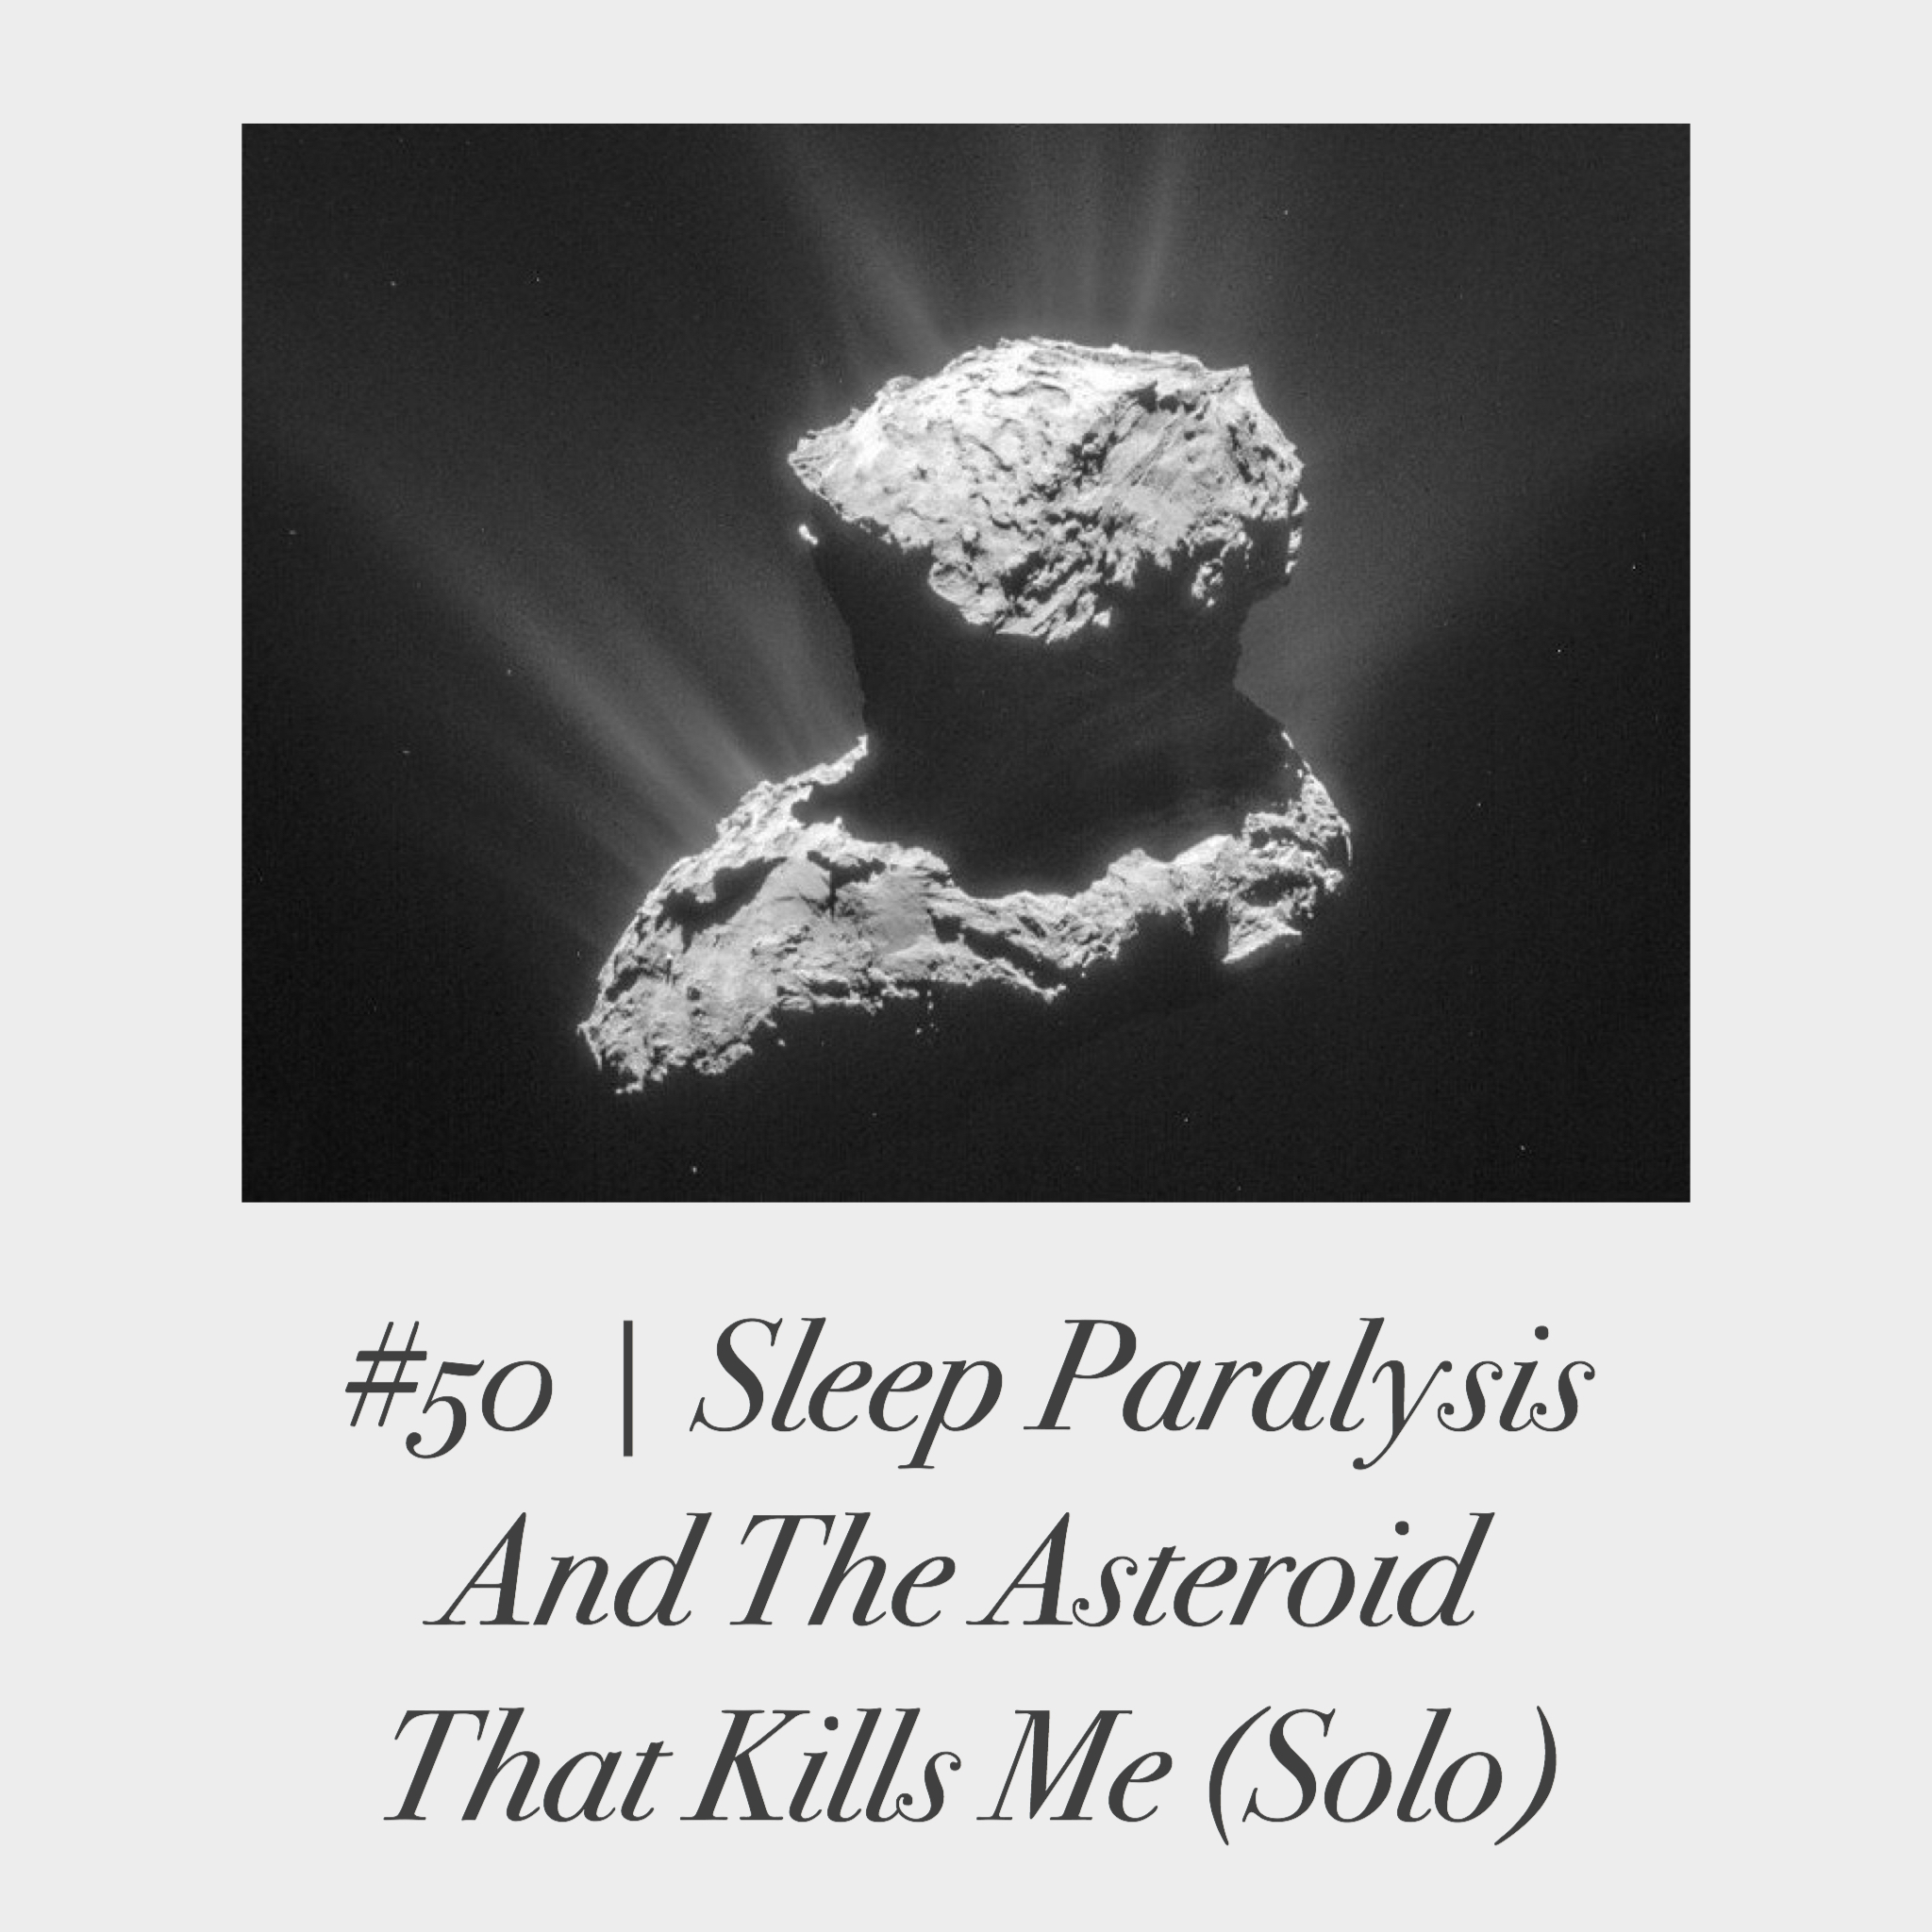 #50 | Sleep Paralysis and the Asteroid That Kills Me (Solo)